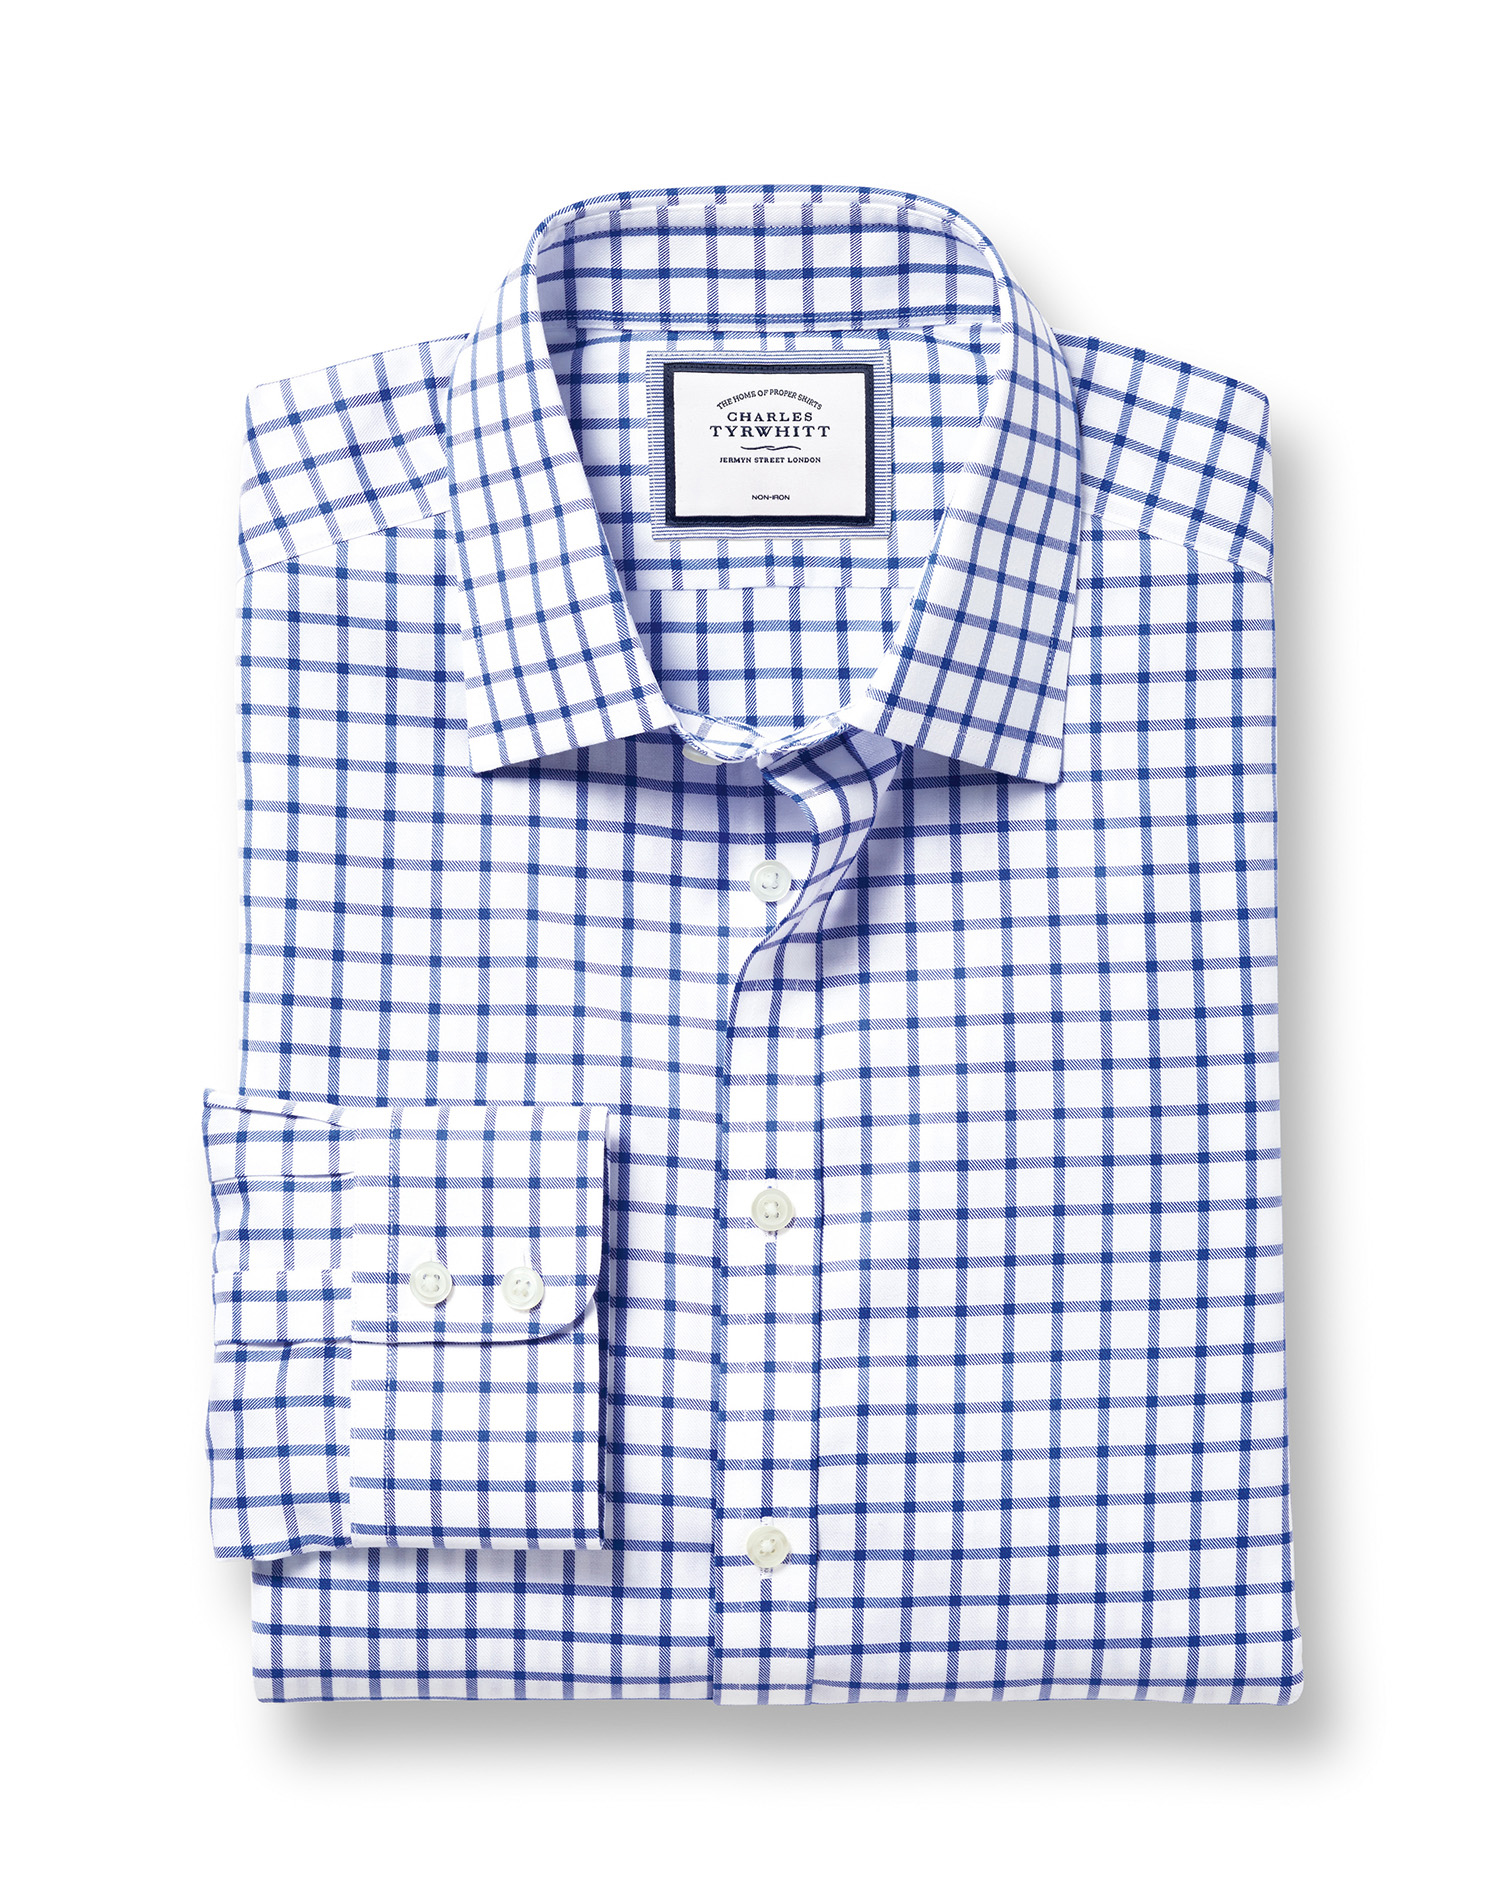 Slim Fit Non-Iron Twill Grid Check Royal Blue Cotton Formal Shirt Single Cuff Size 15.5/33 by Charle